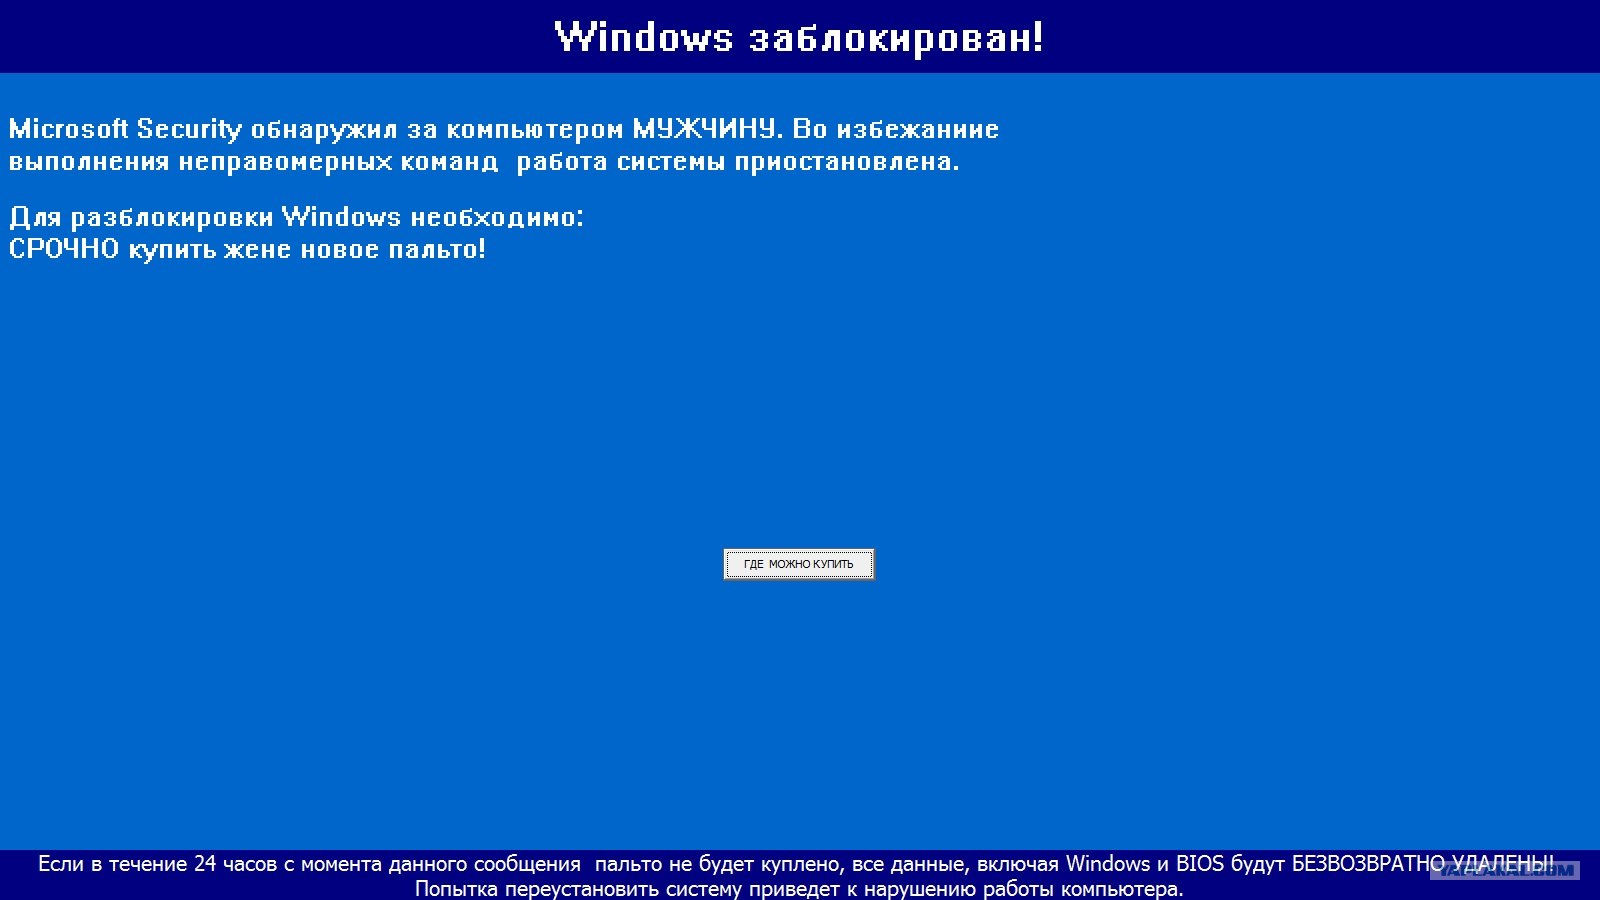 Порно баннер при загрузке windows